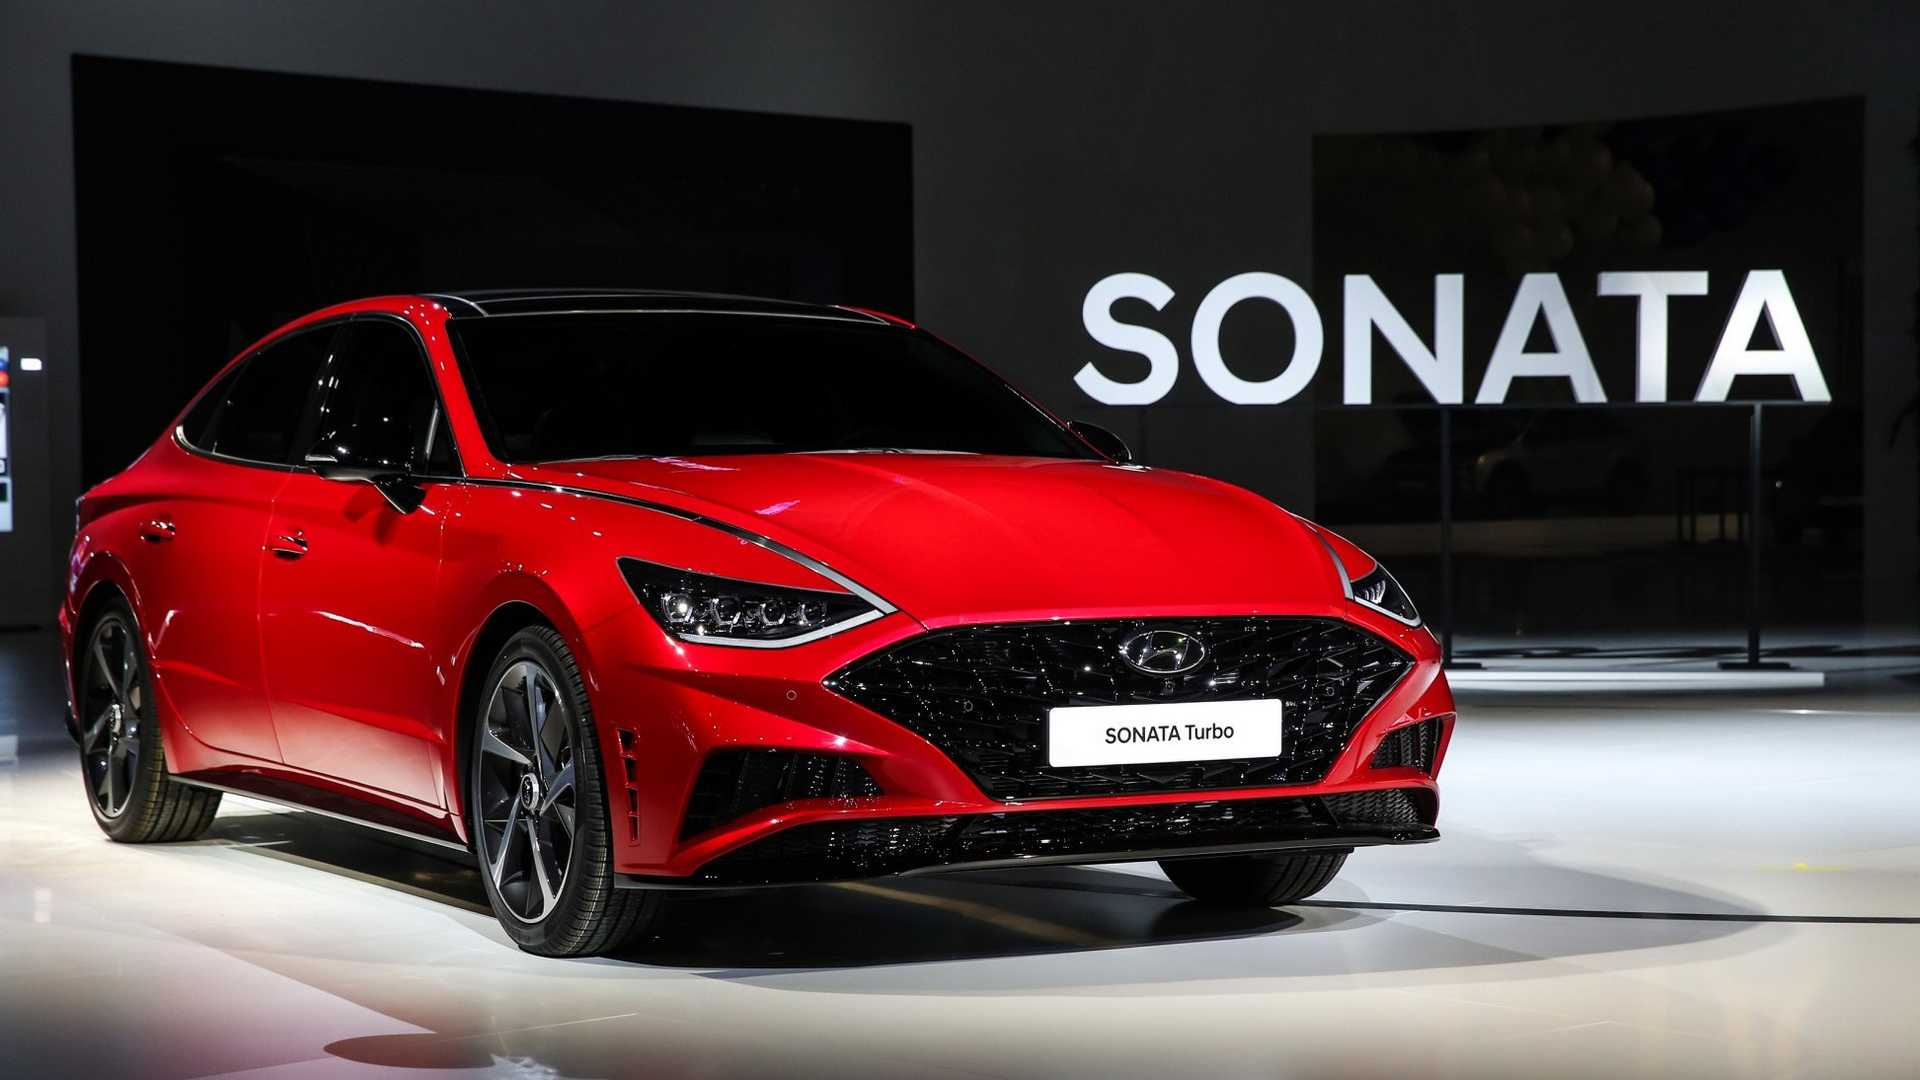 84 A 2020 Hyundai Sonata Engine Options Picture